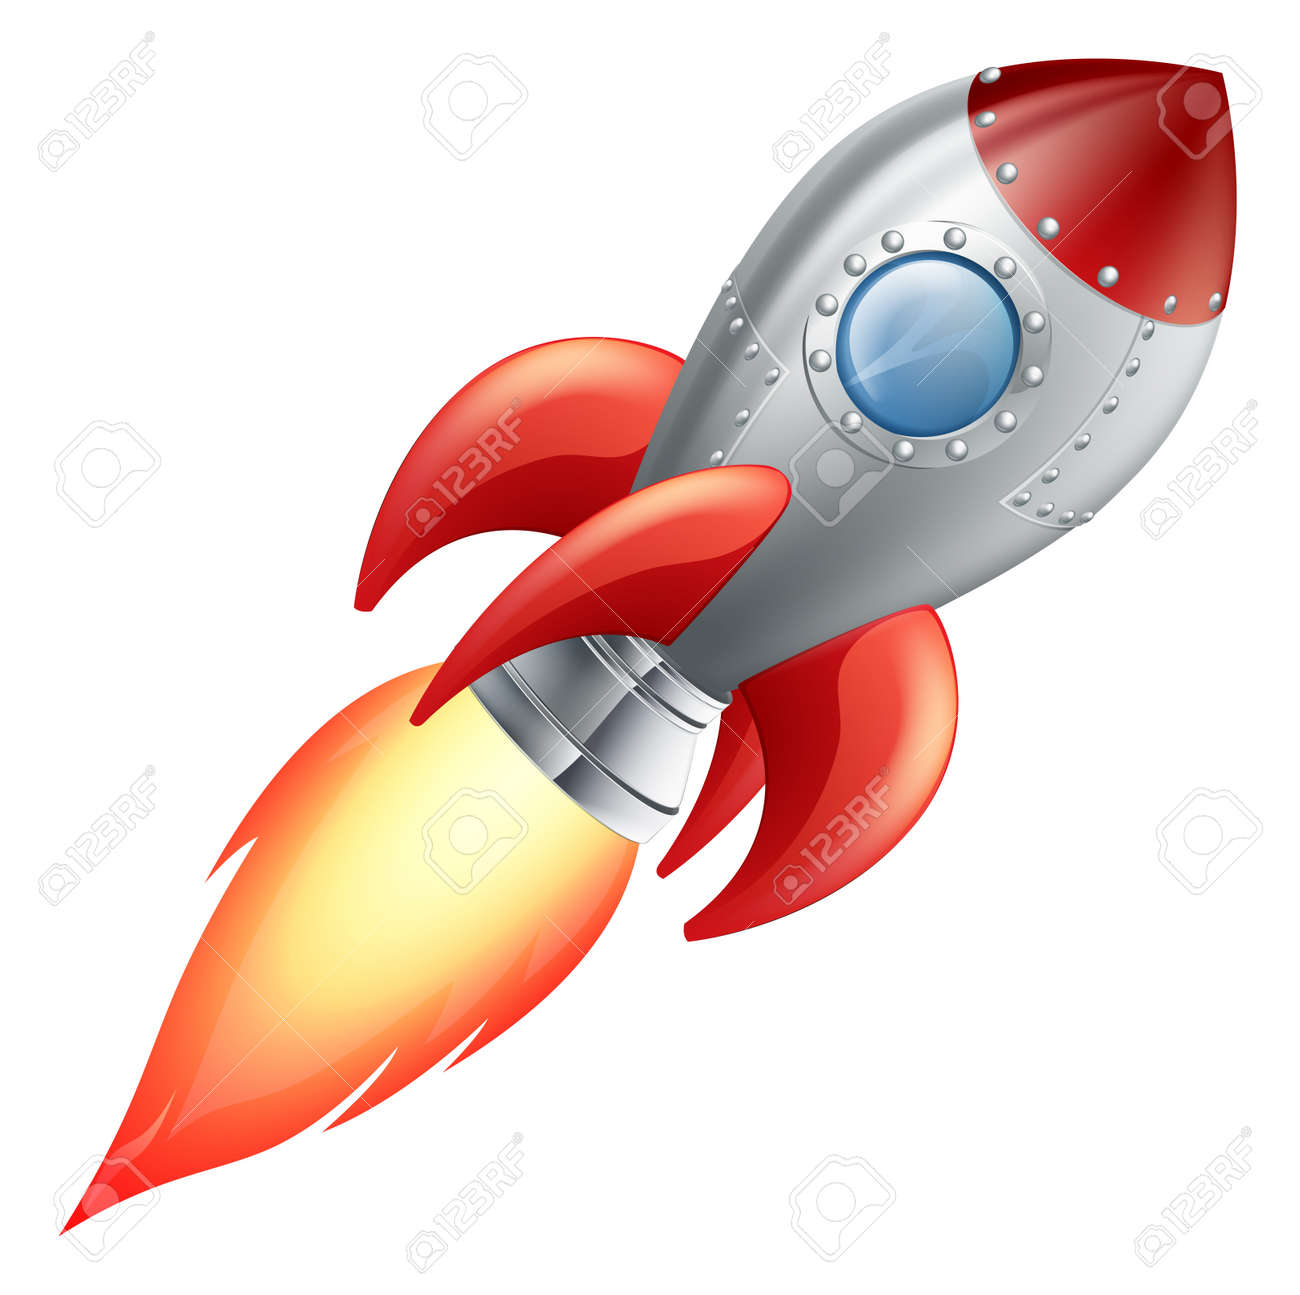 Illustration of a cute cartoon rocket space ship Stock Vector - 14895282